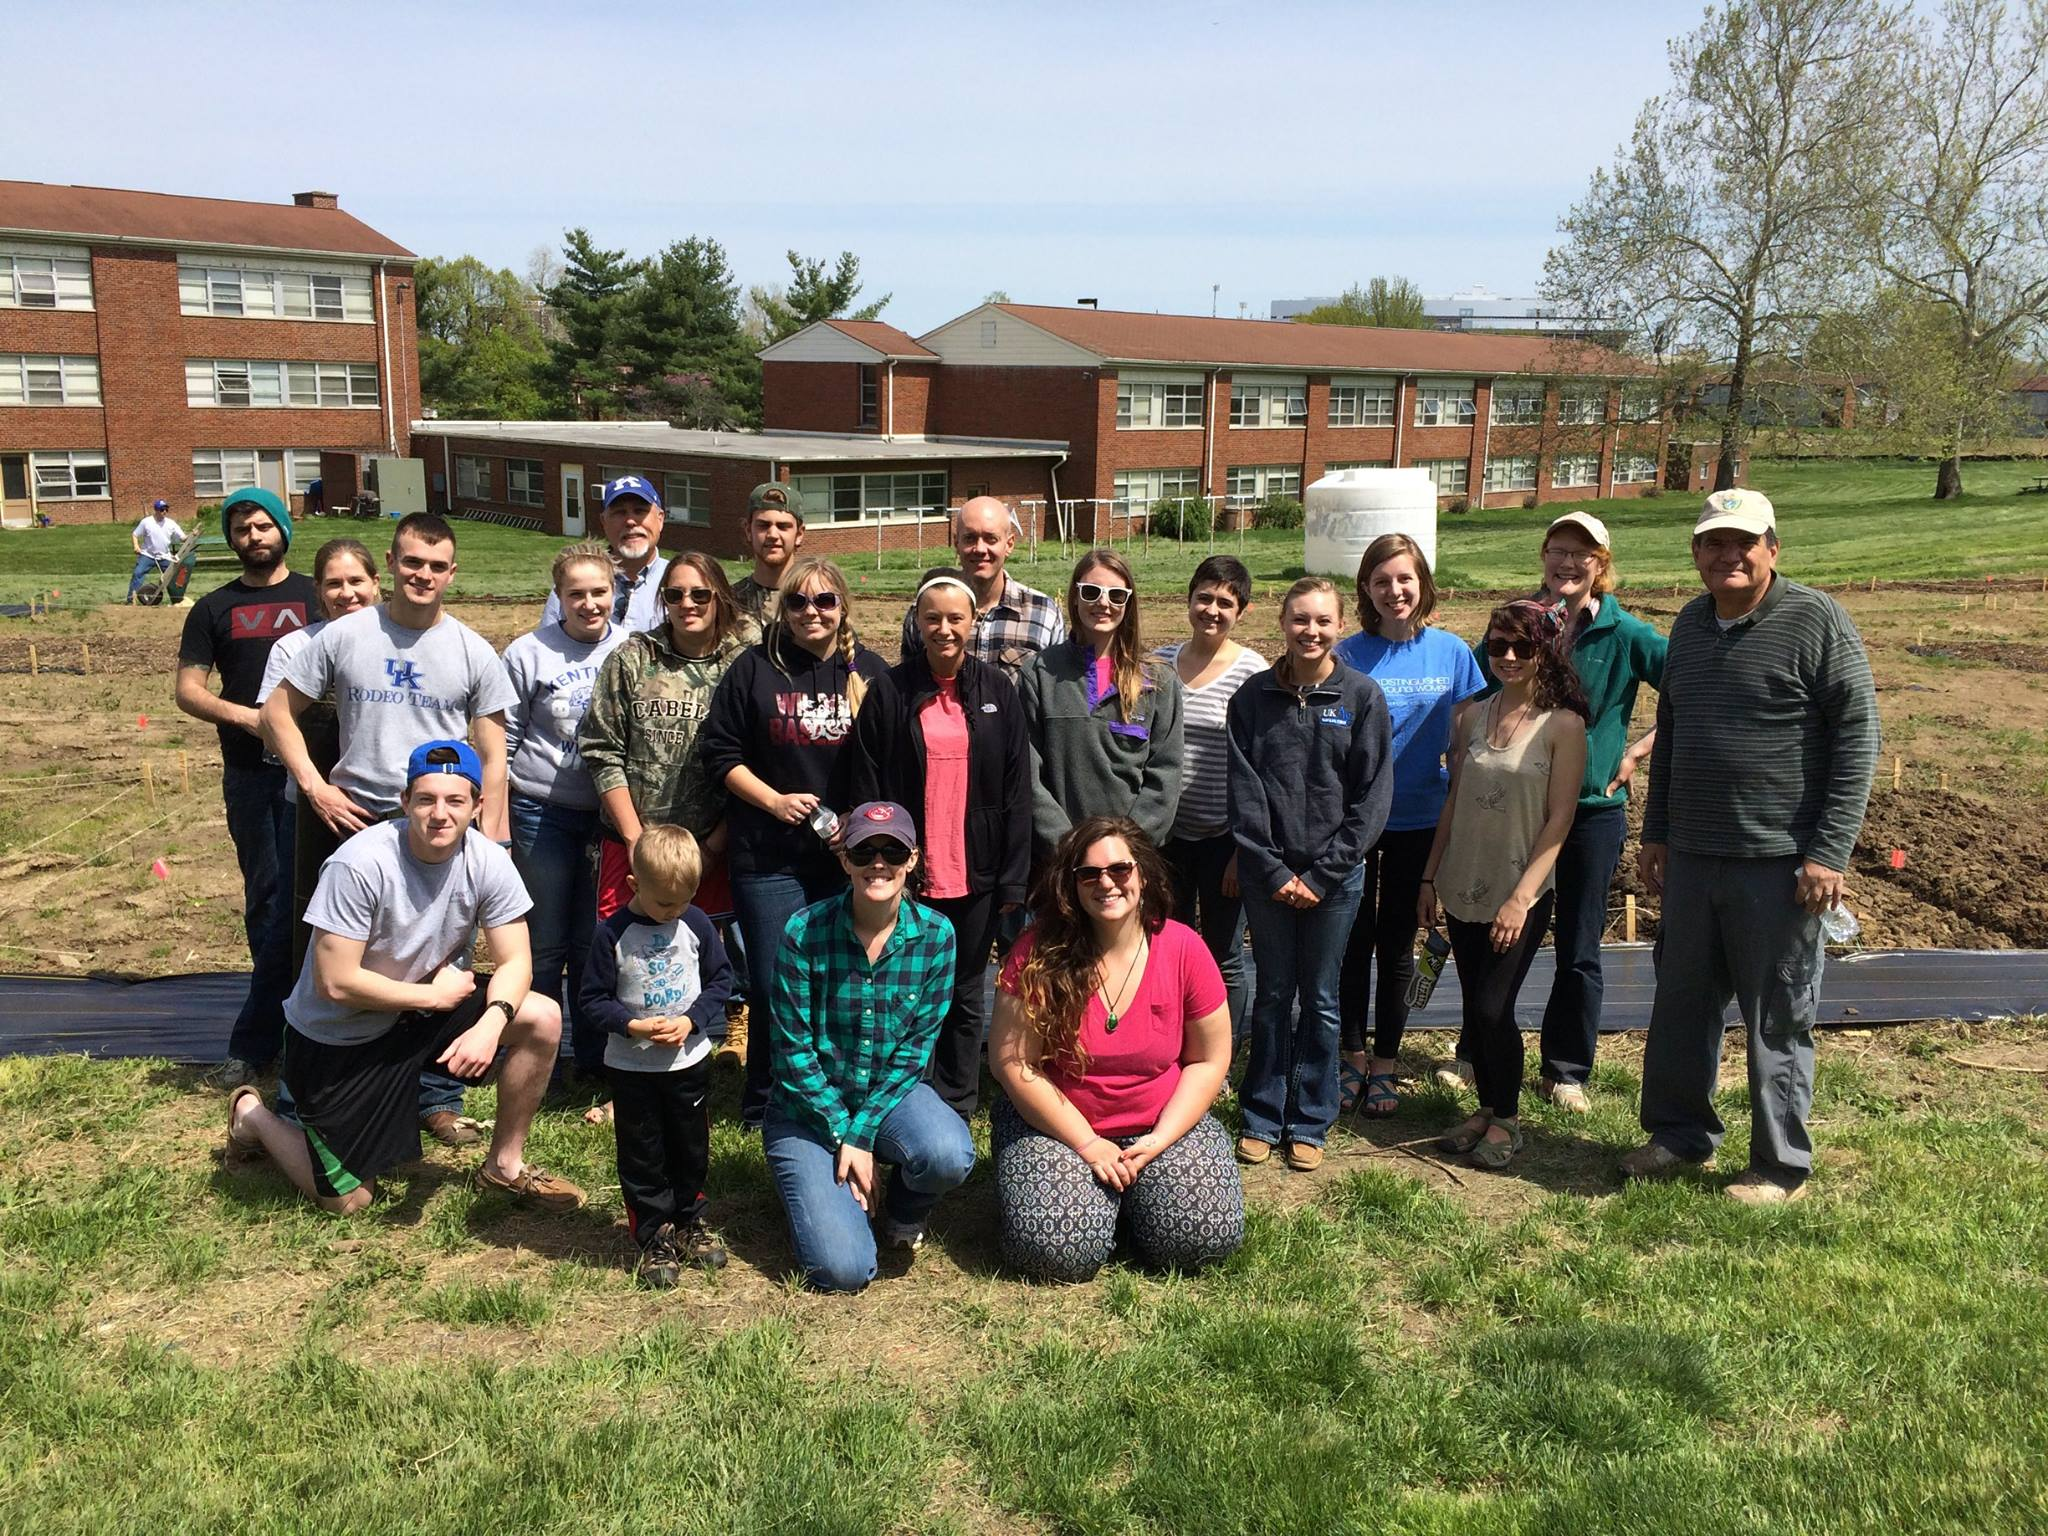 UK Horticulture faculty, students, and staff volunteer to revitalize the community garden.